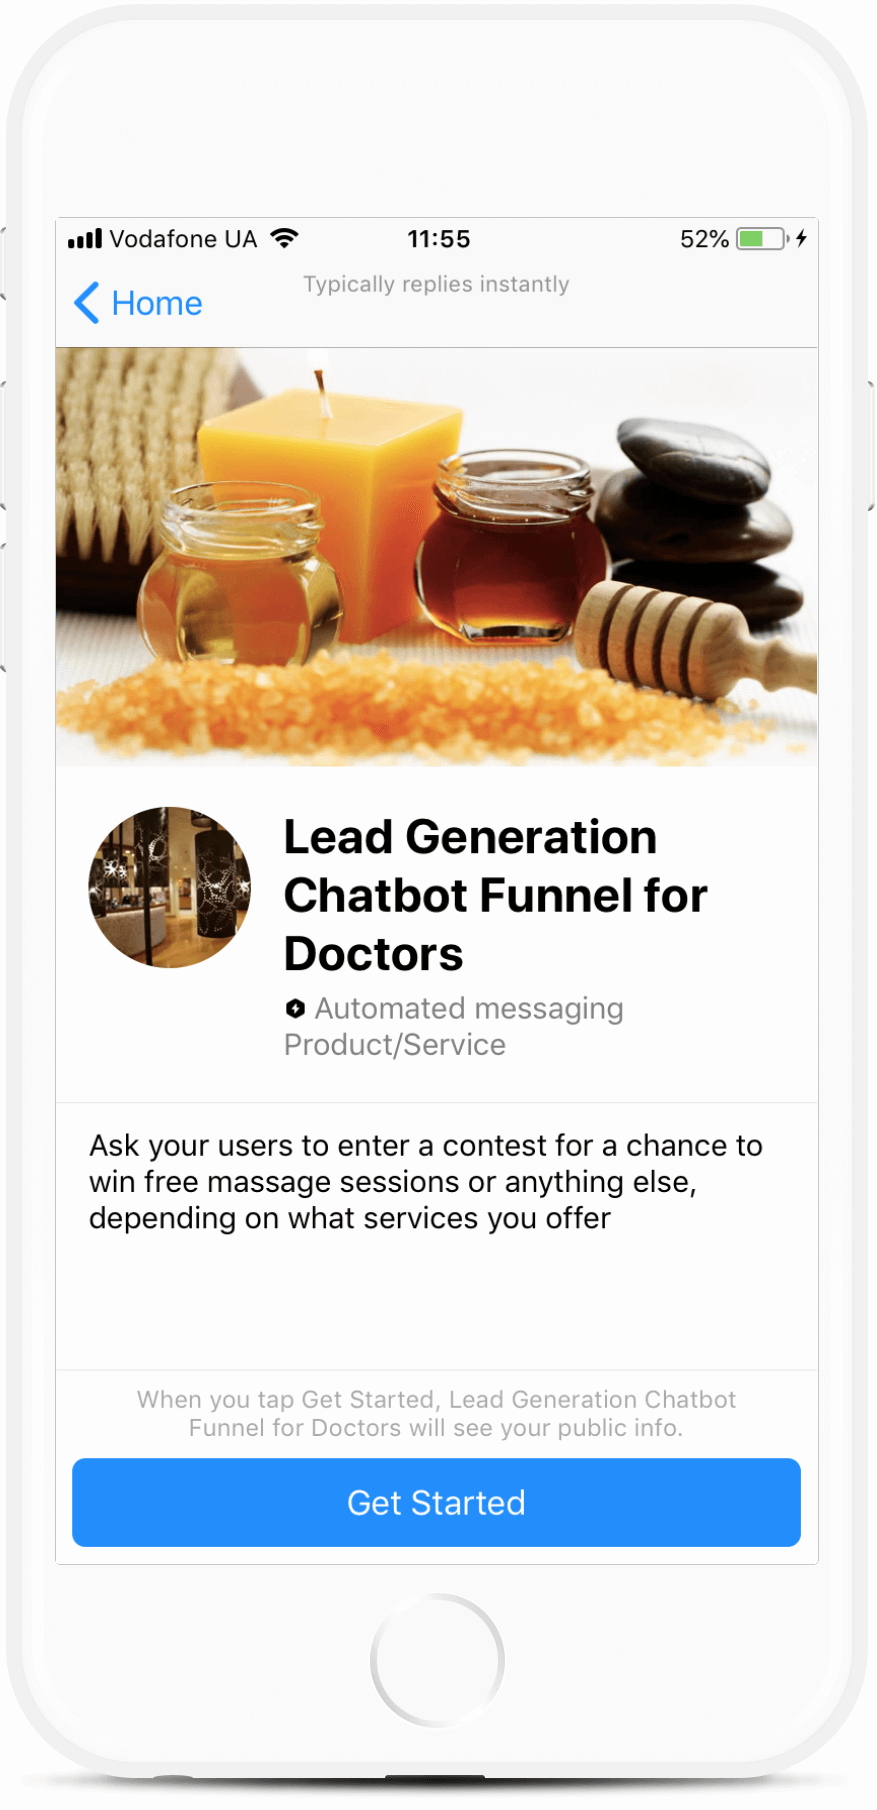 Lead Generation Funnel for Doctors